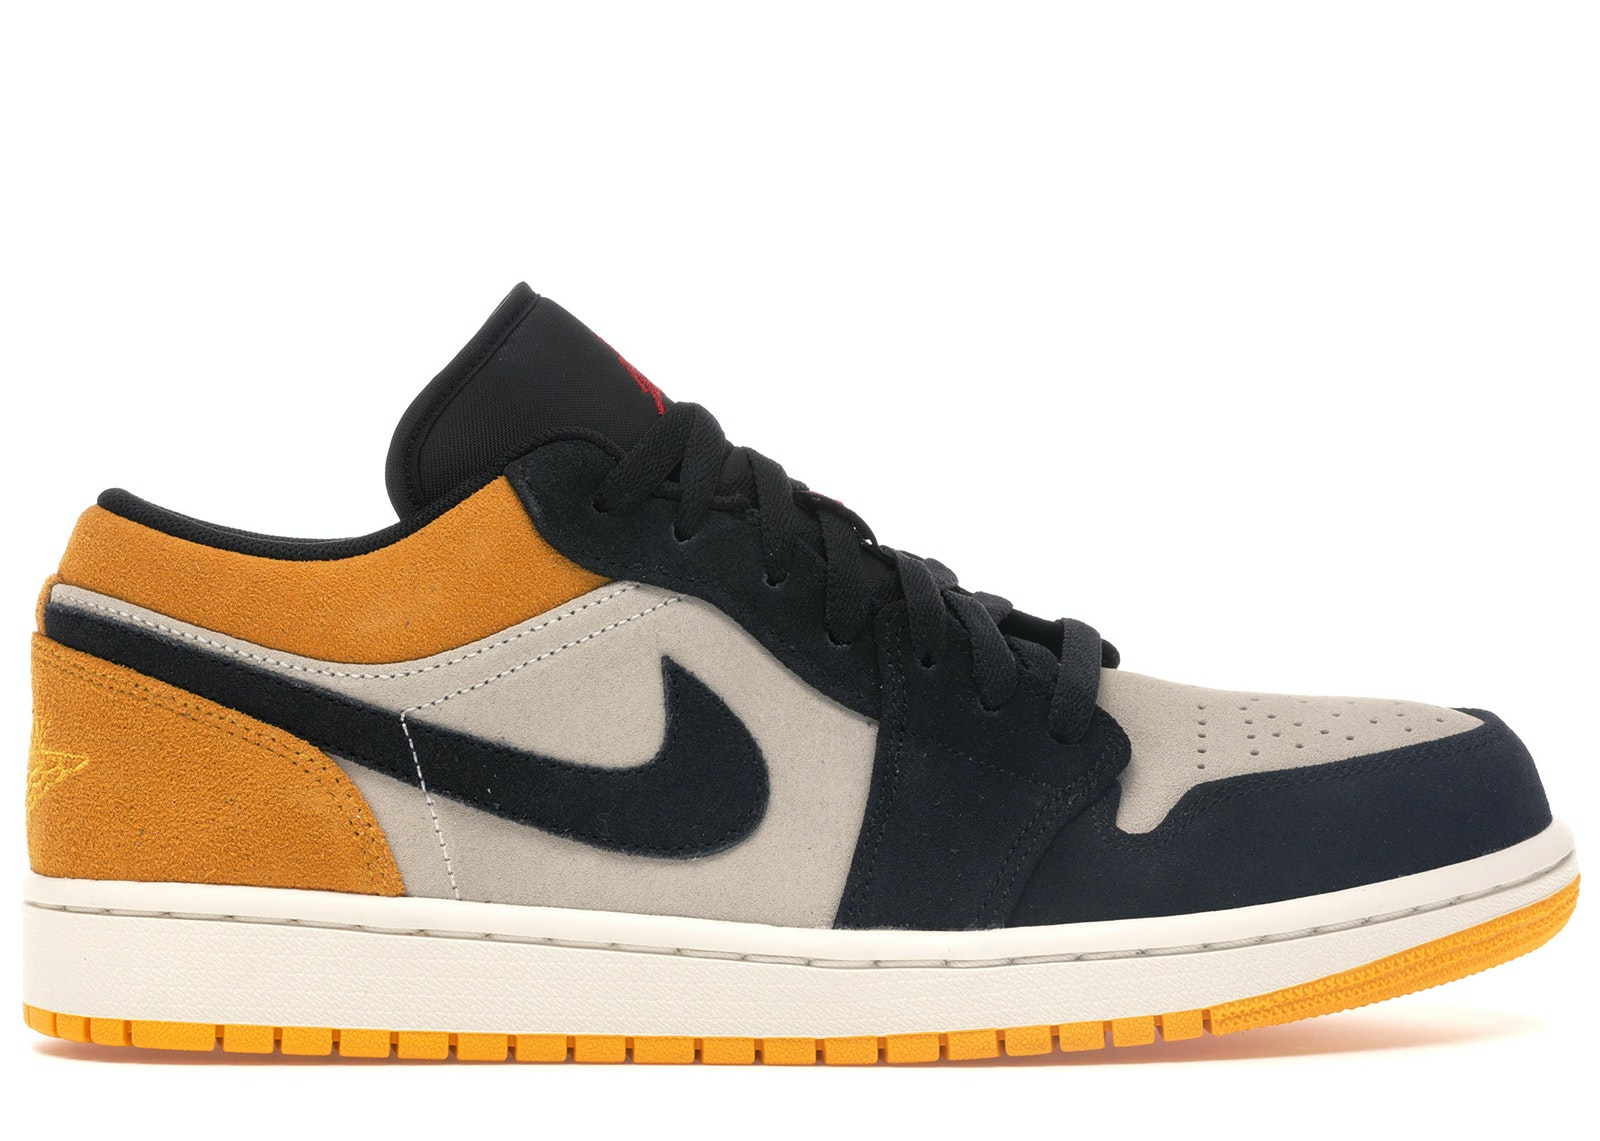 Jordan 1 Low Sail University Gold Black